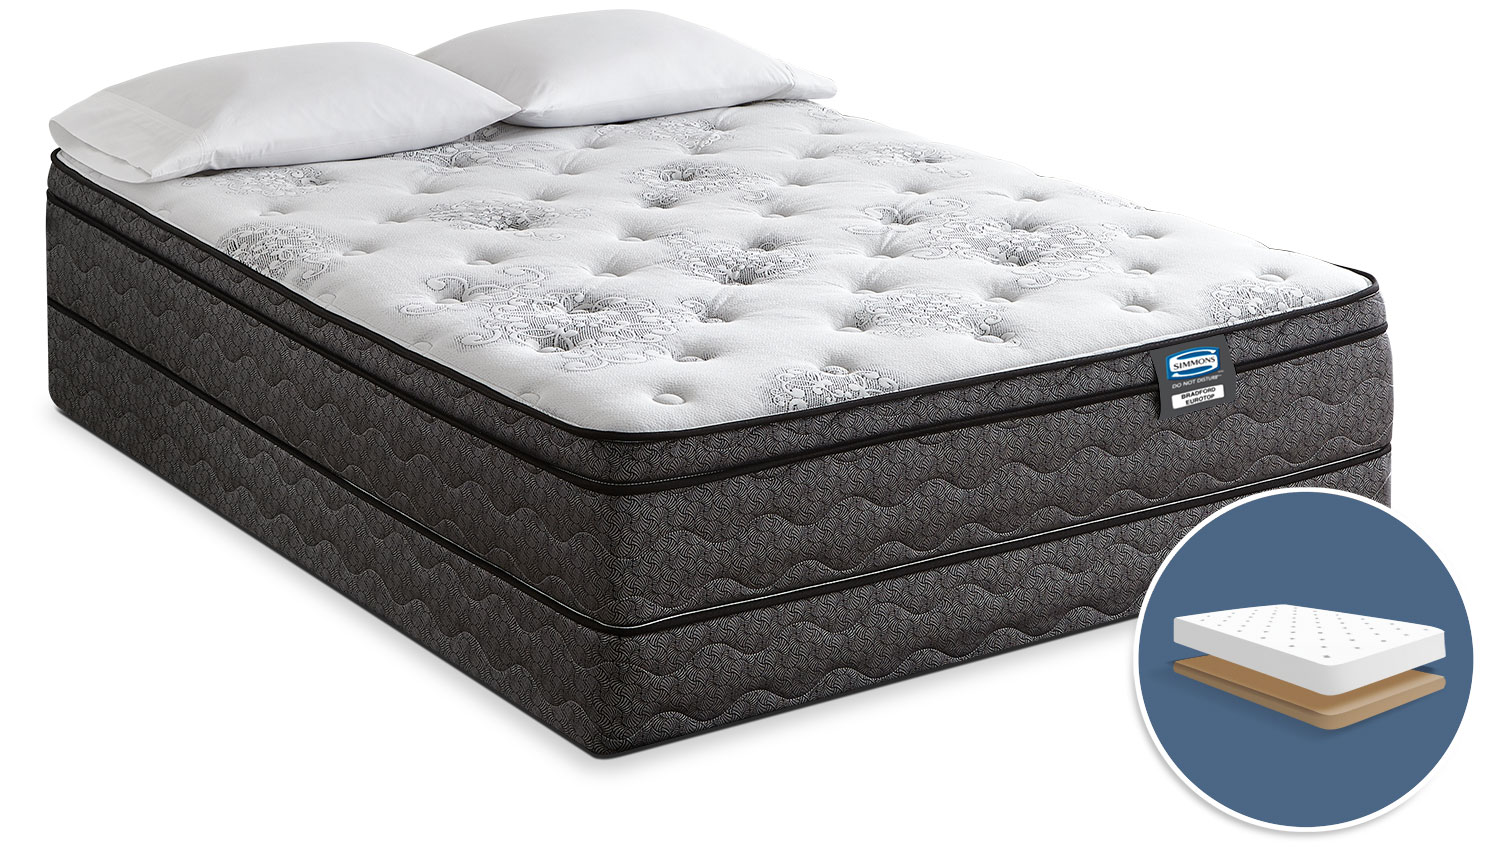 Simmons Do Not Disturb Bradford Euro-Top Firm Low-Profile Full Mattress Set